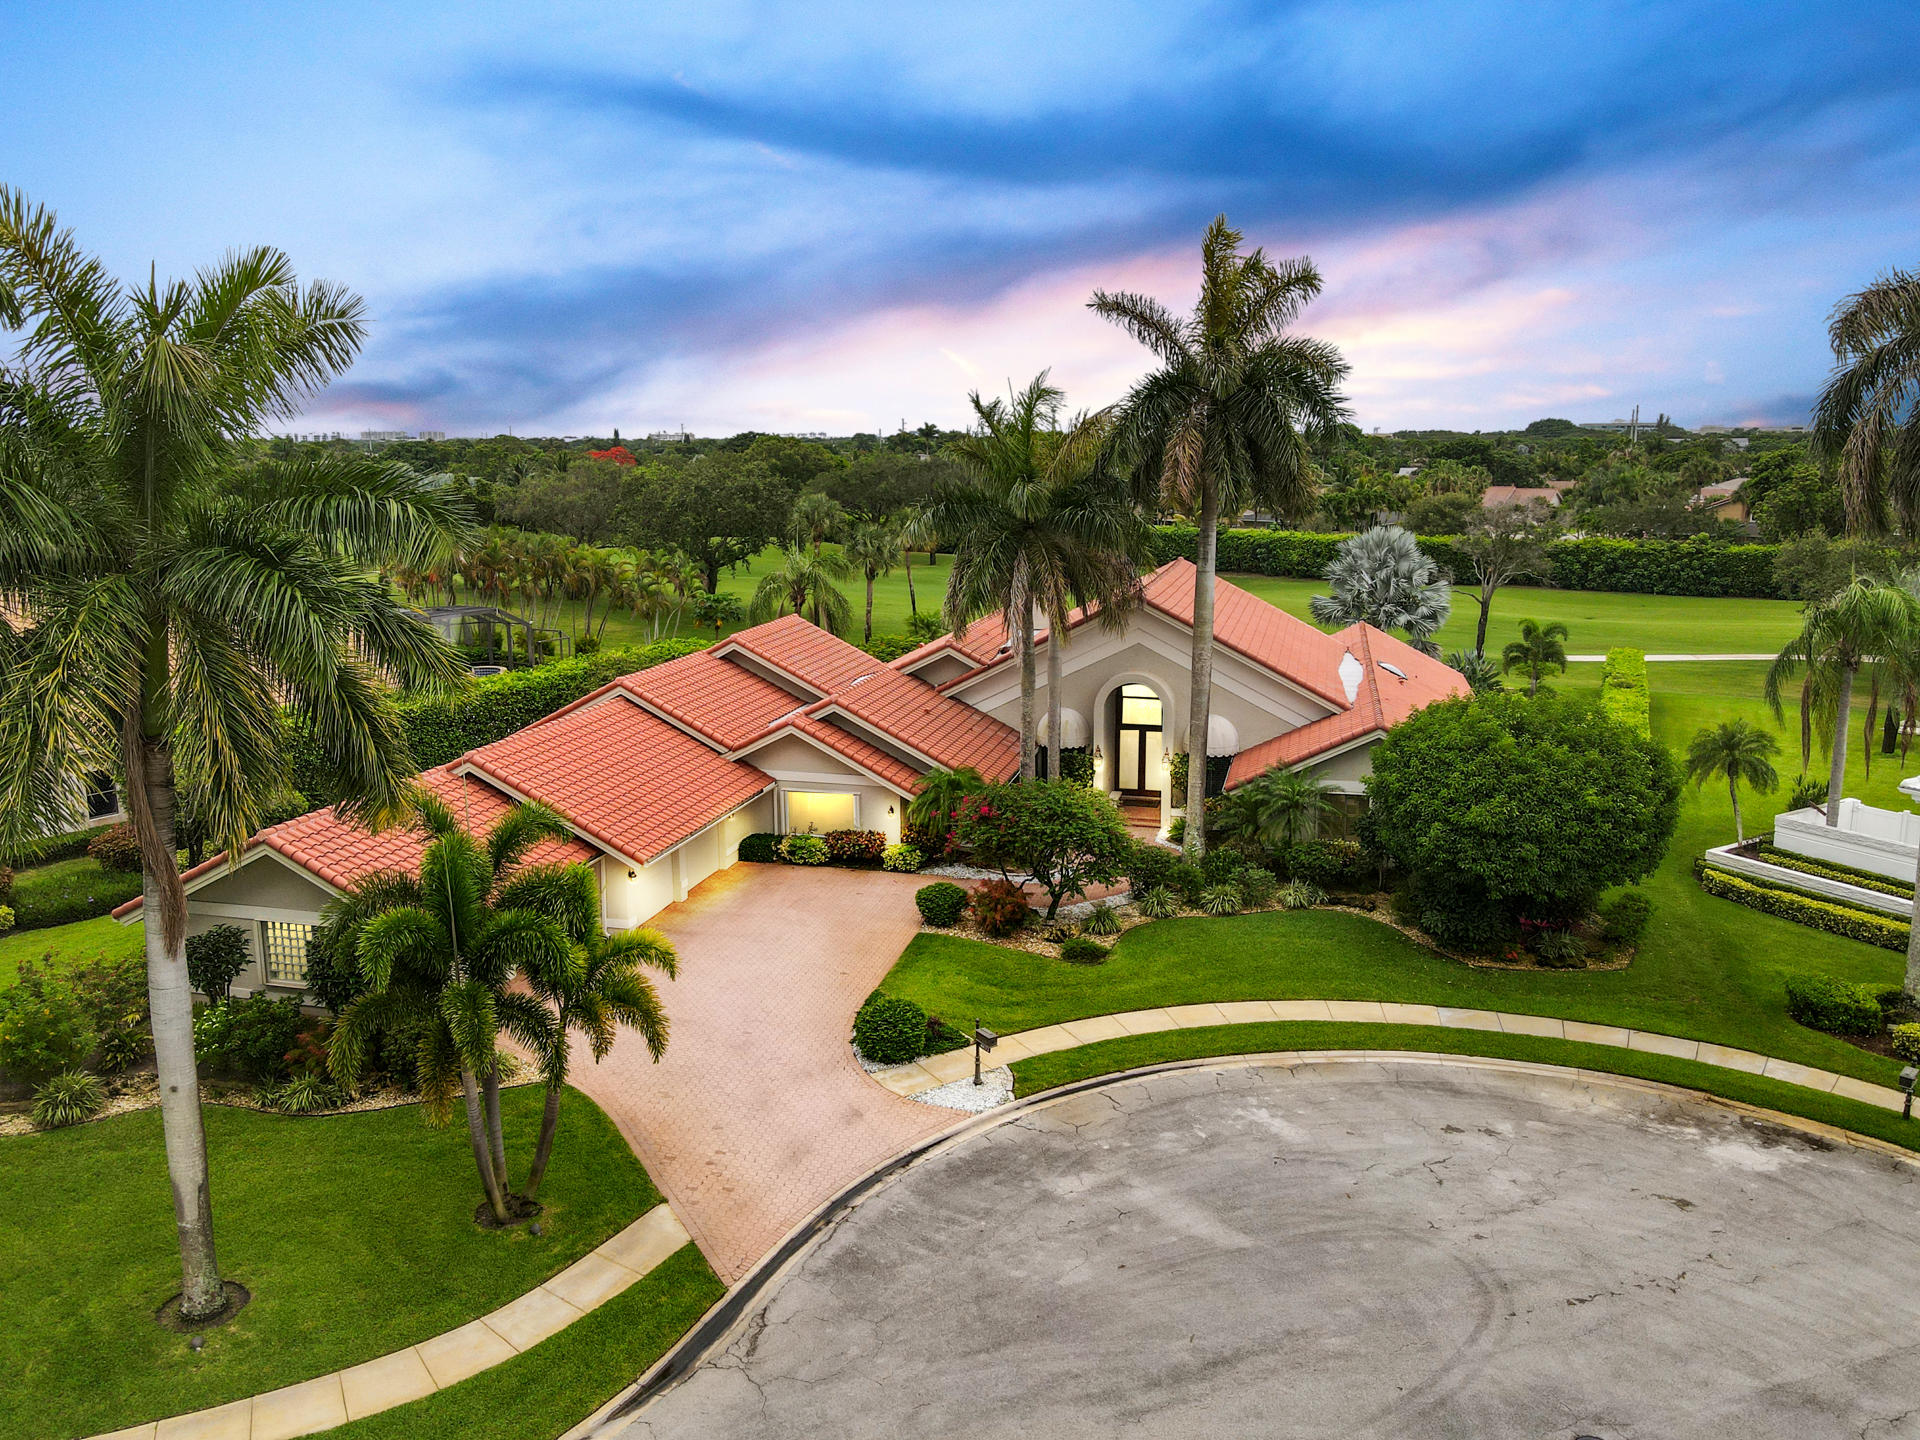 Boca Raton: Bocaire Country Club - listed at 1,150,000 (4832 Chamal Cir)